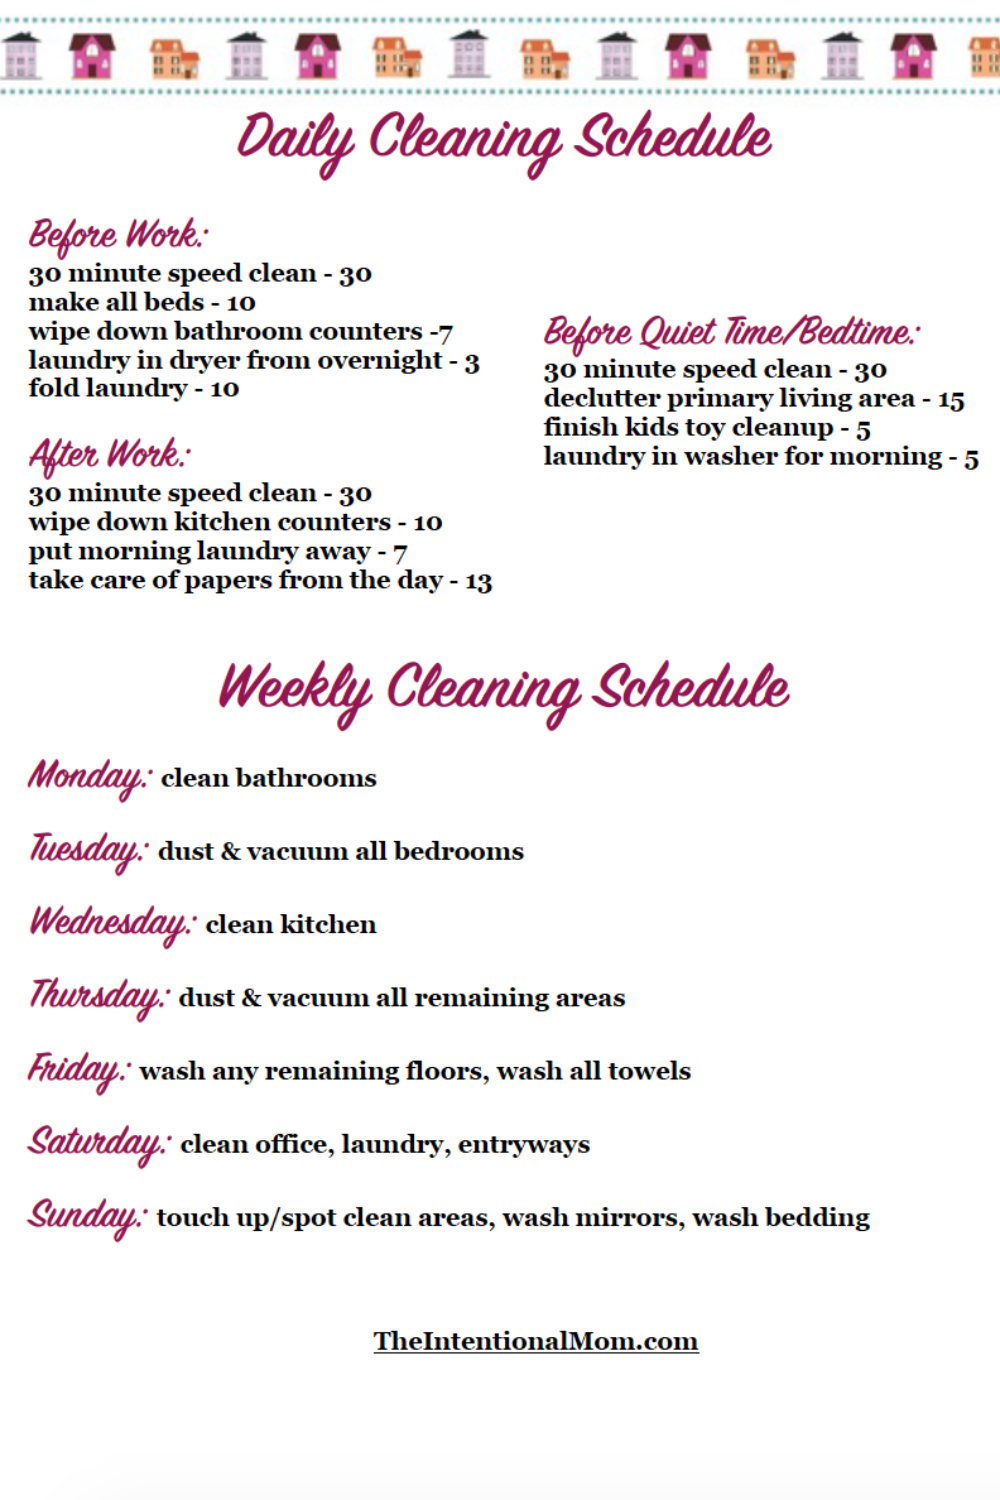 Free Printable Cleaning Schedule For Busy Moms   Cleaning schedule ...